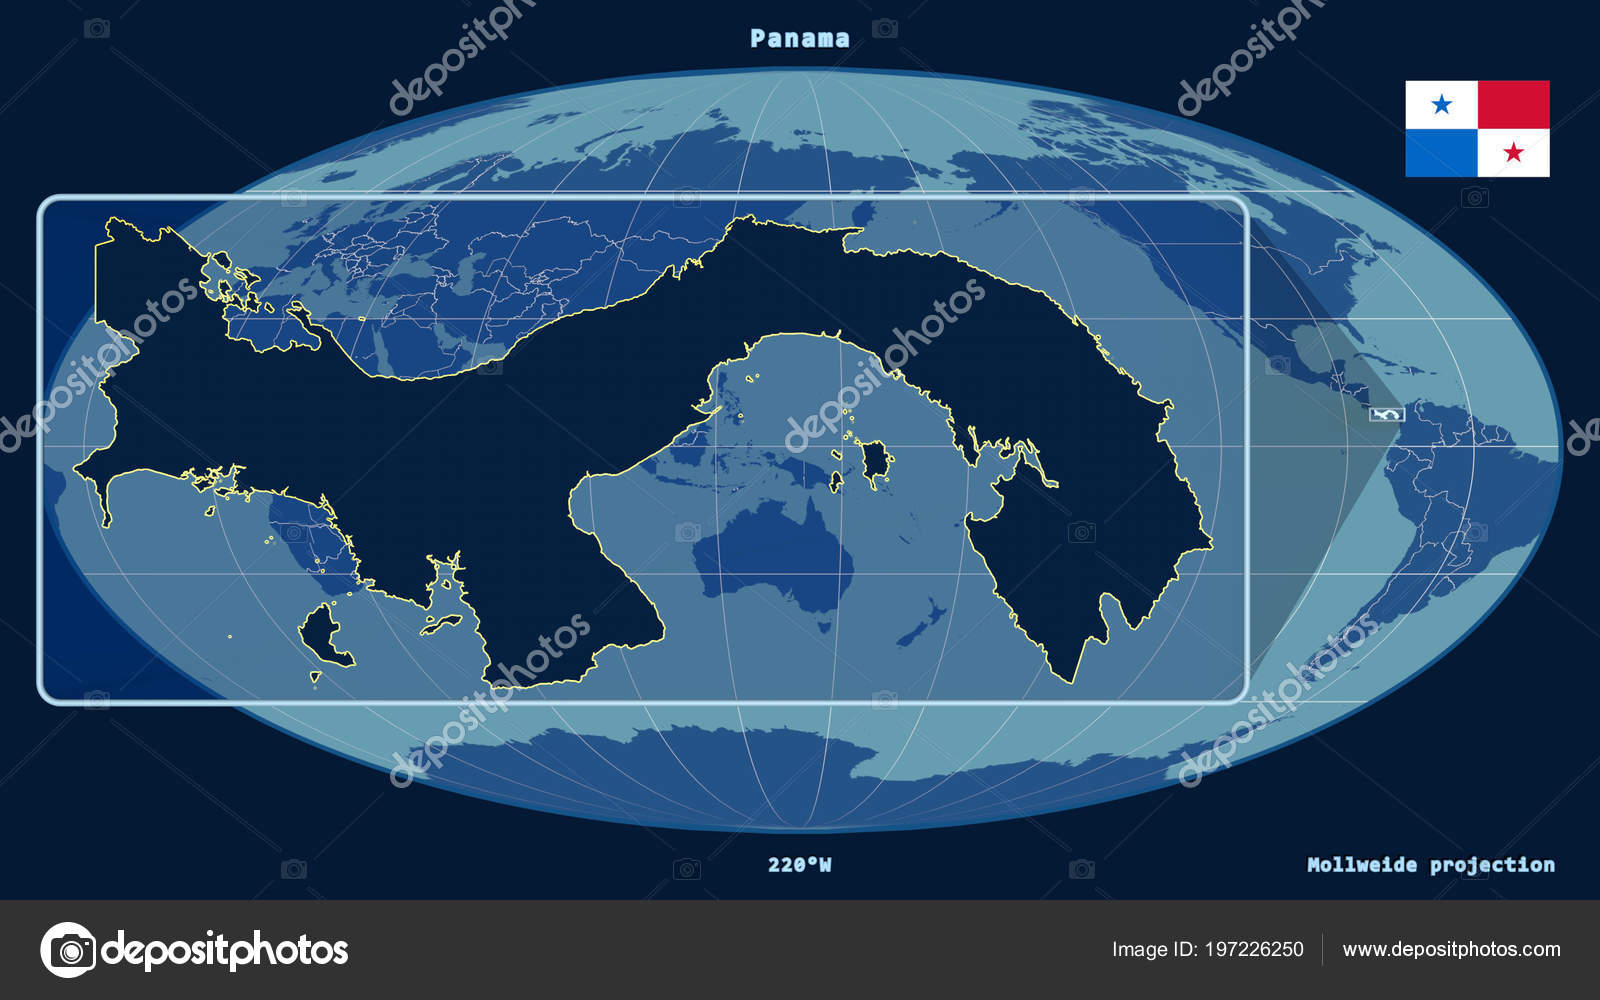 Zoomed View Panama Outline Perspective Lines Global Map Mollweide